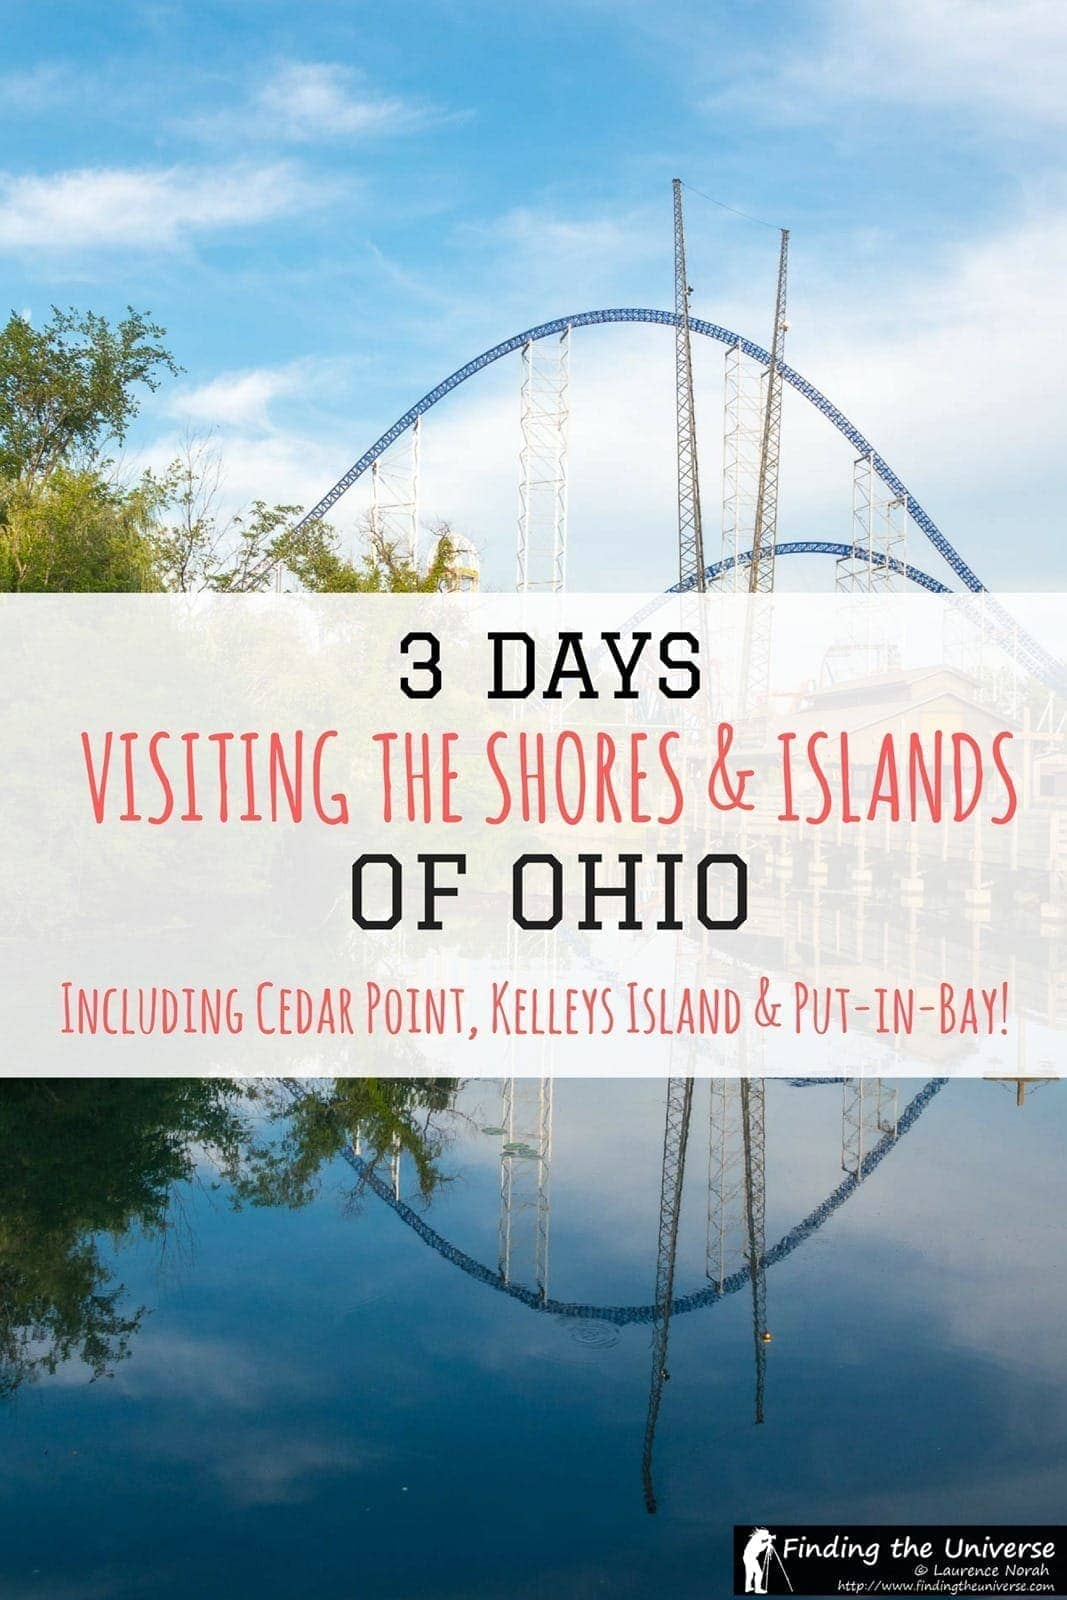 A detailed guide and three day itinerary for visiting Ohio's Shores and Islands region, including Sandusky, Cedar Point, Kelleys Island and Put-In-Bay